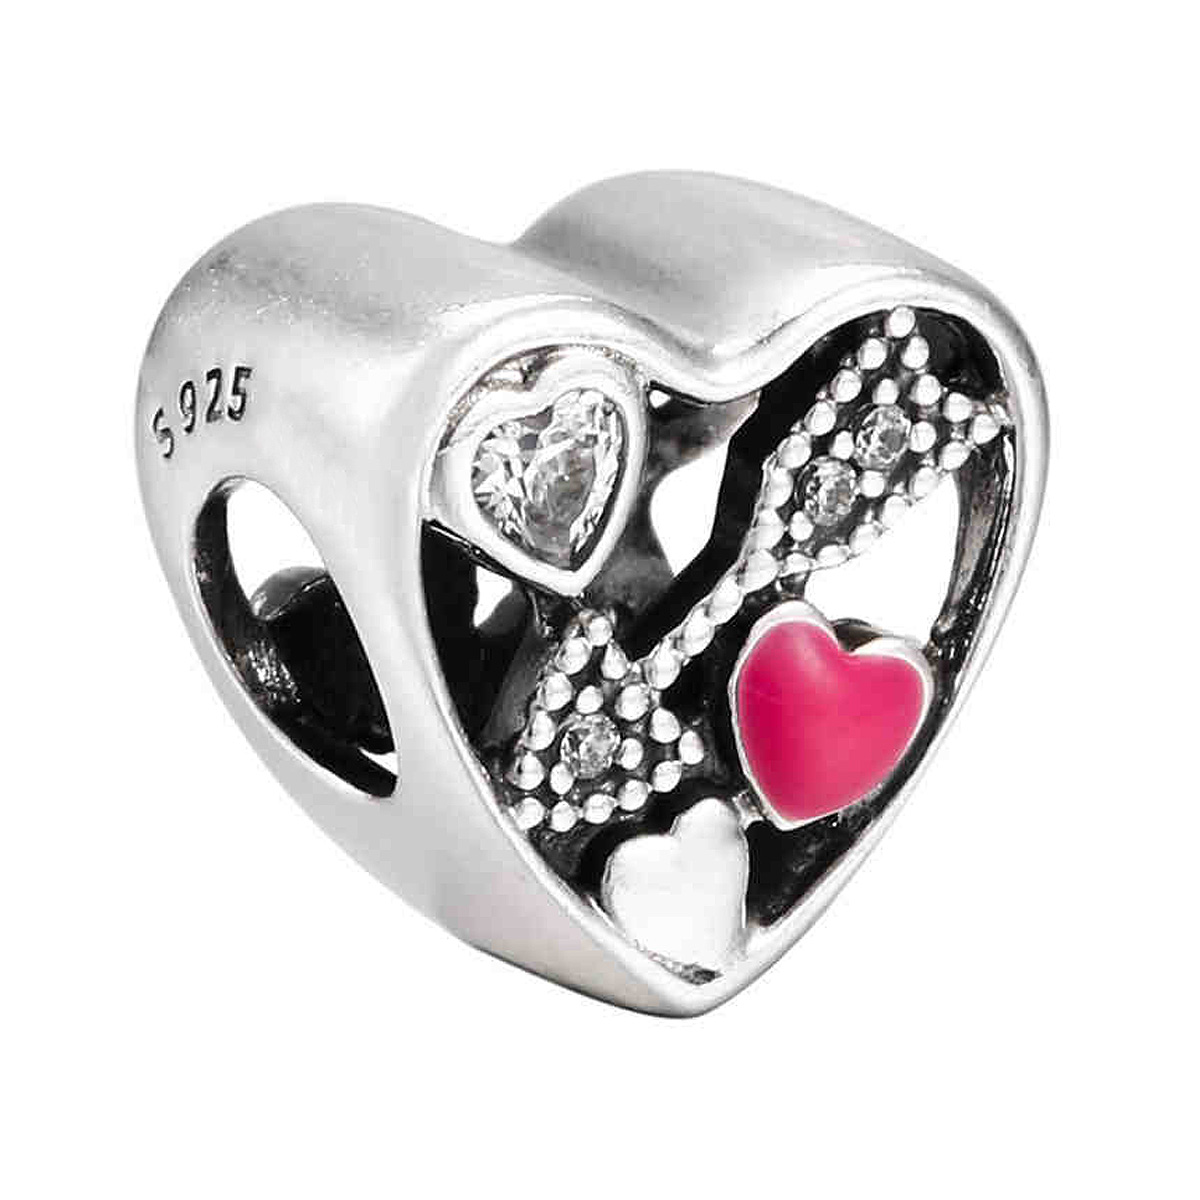 New 925 Sterling Silver Bead Charm Openwork Struck By Love With Crystal Cupids Arrow Beads Fit Pandora Bracelet Diy Jewelry ...